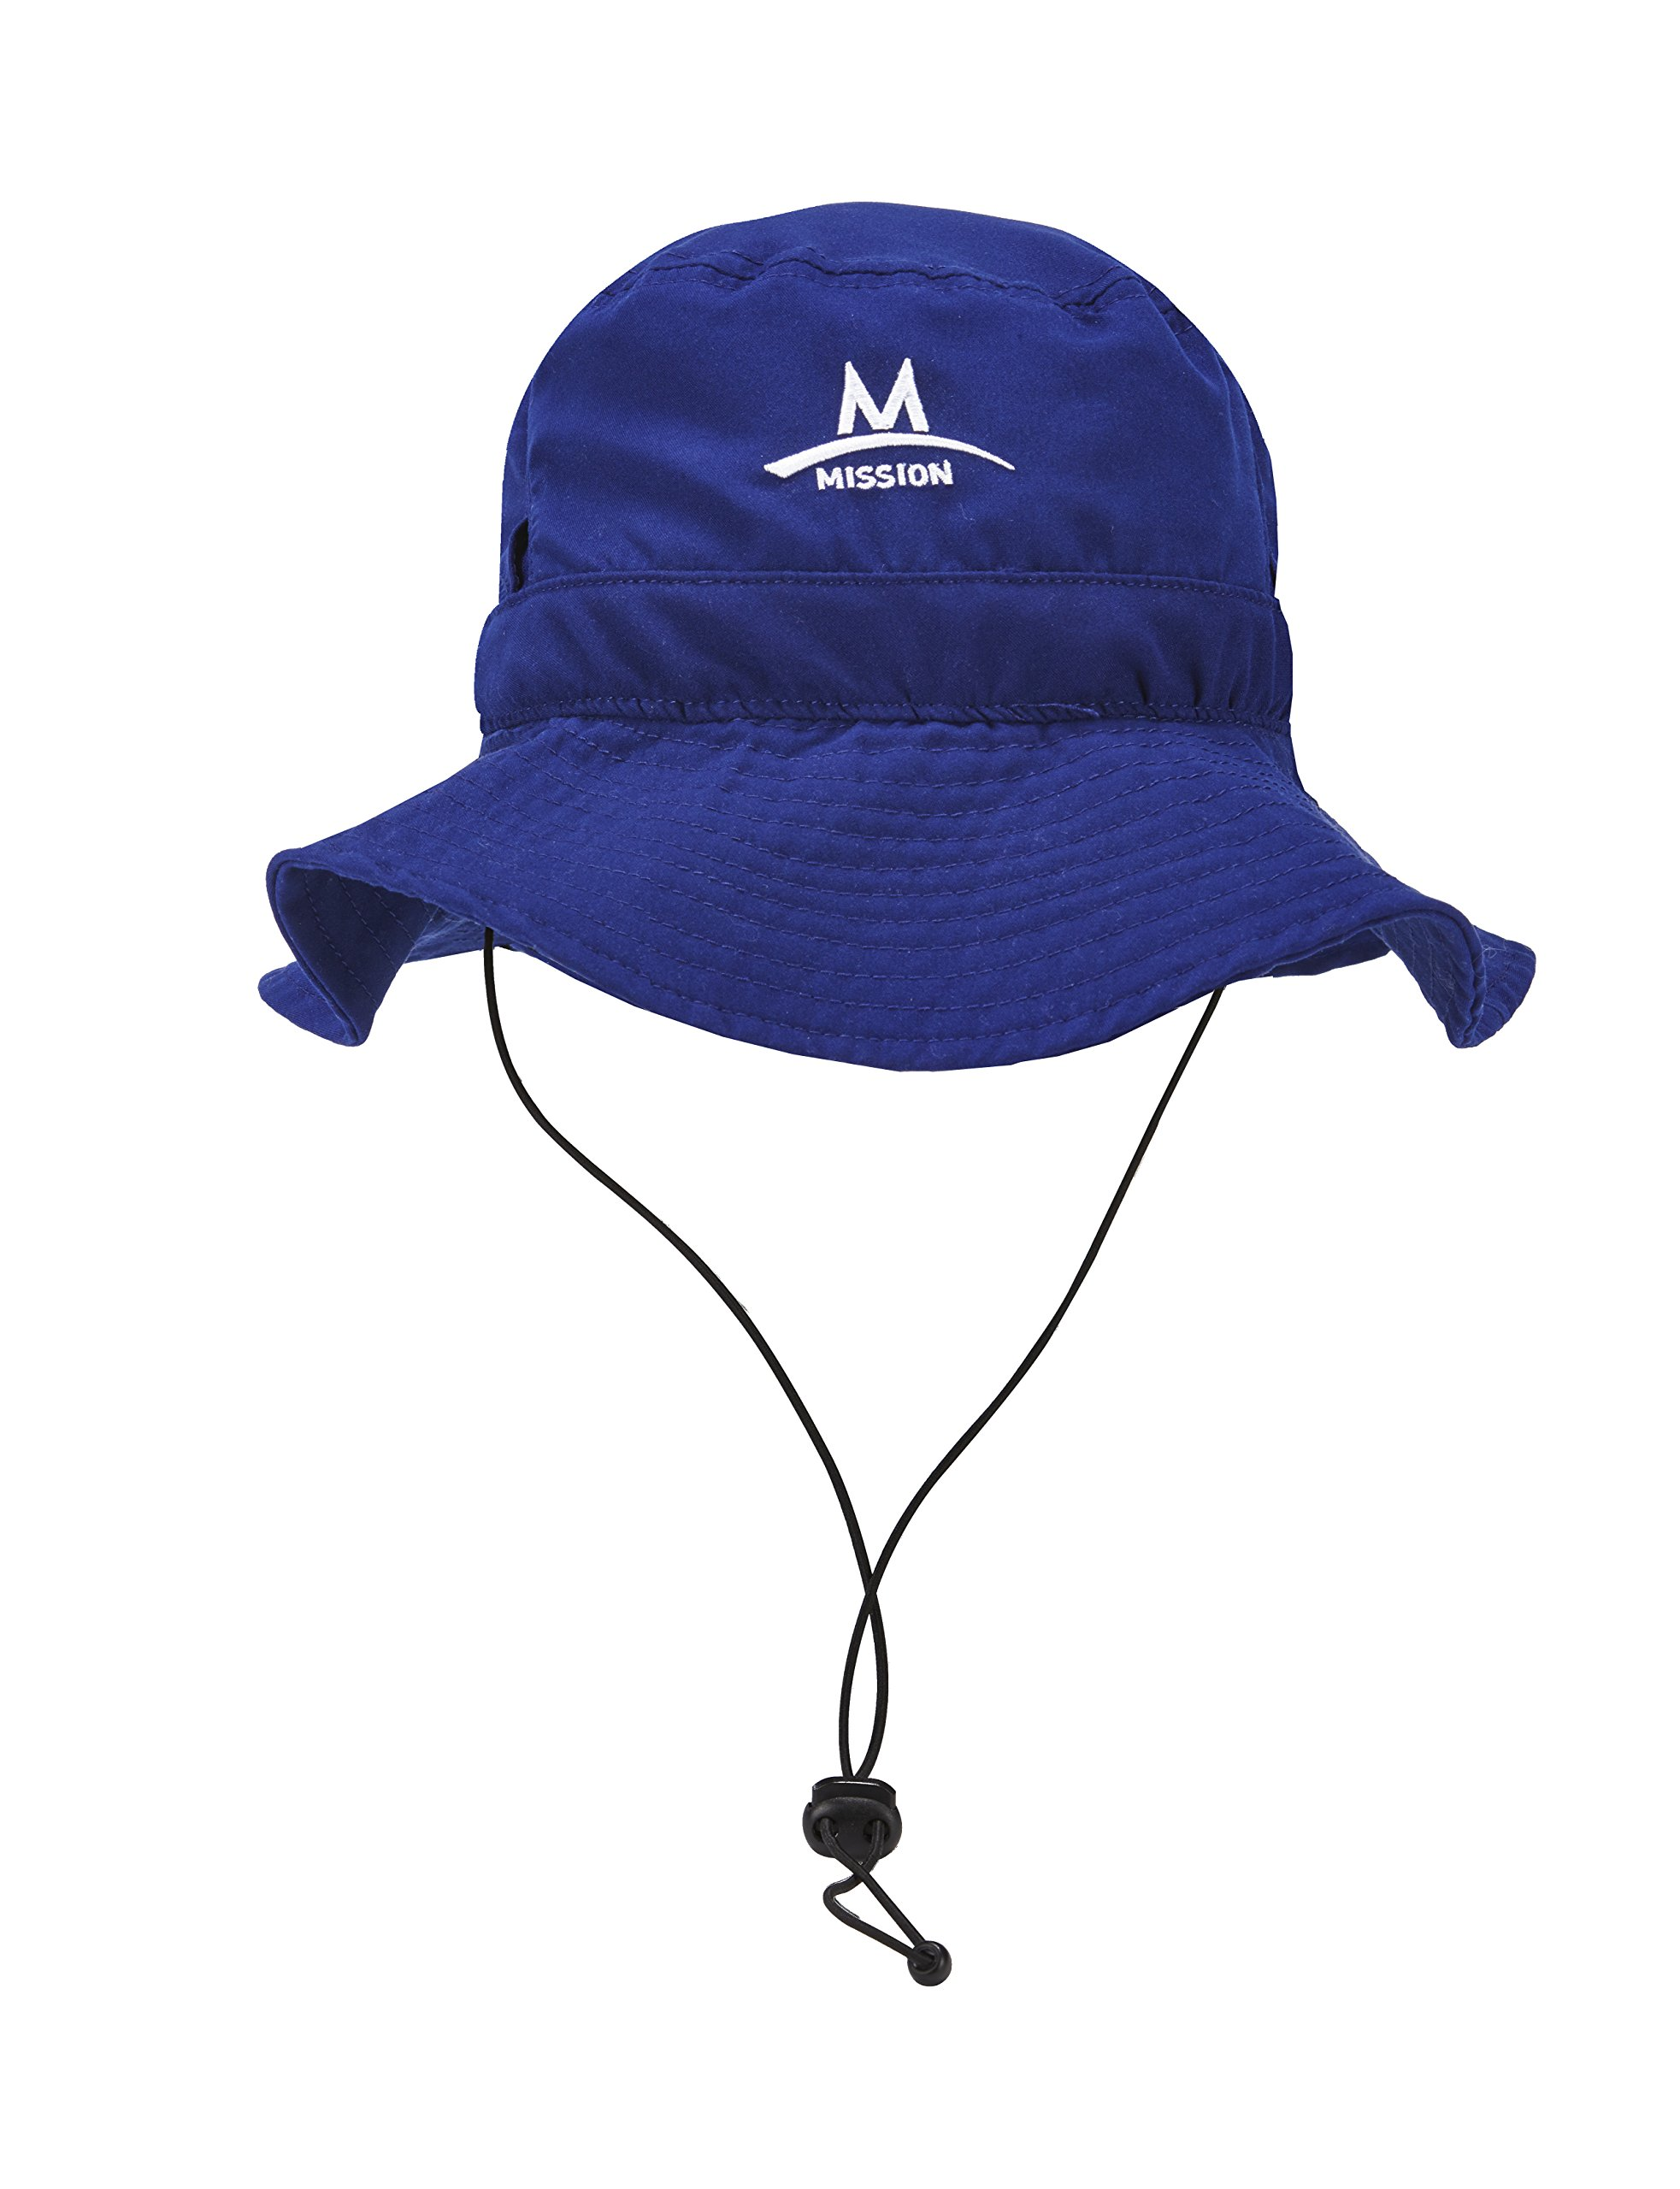 Mission Cooling Bucket Hat, Navy